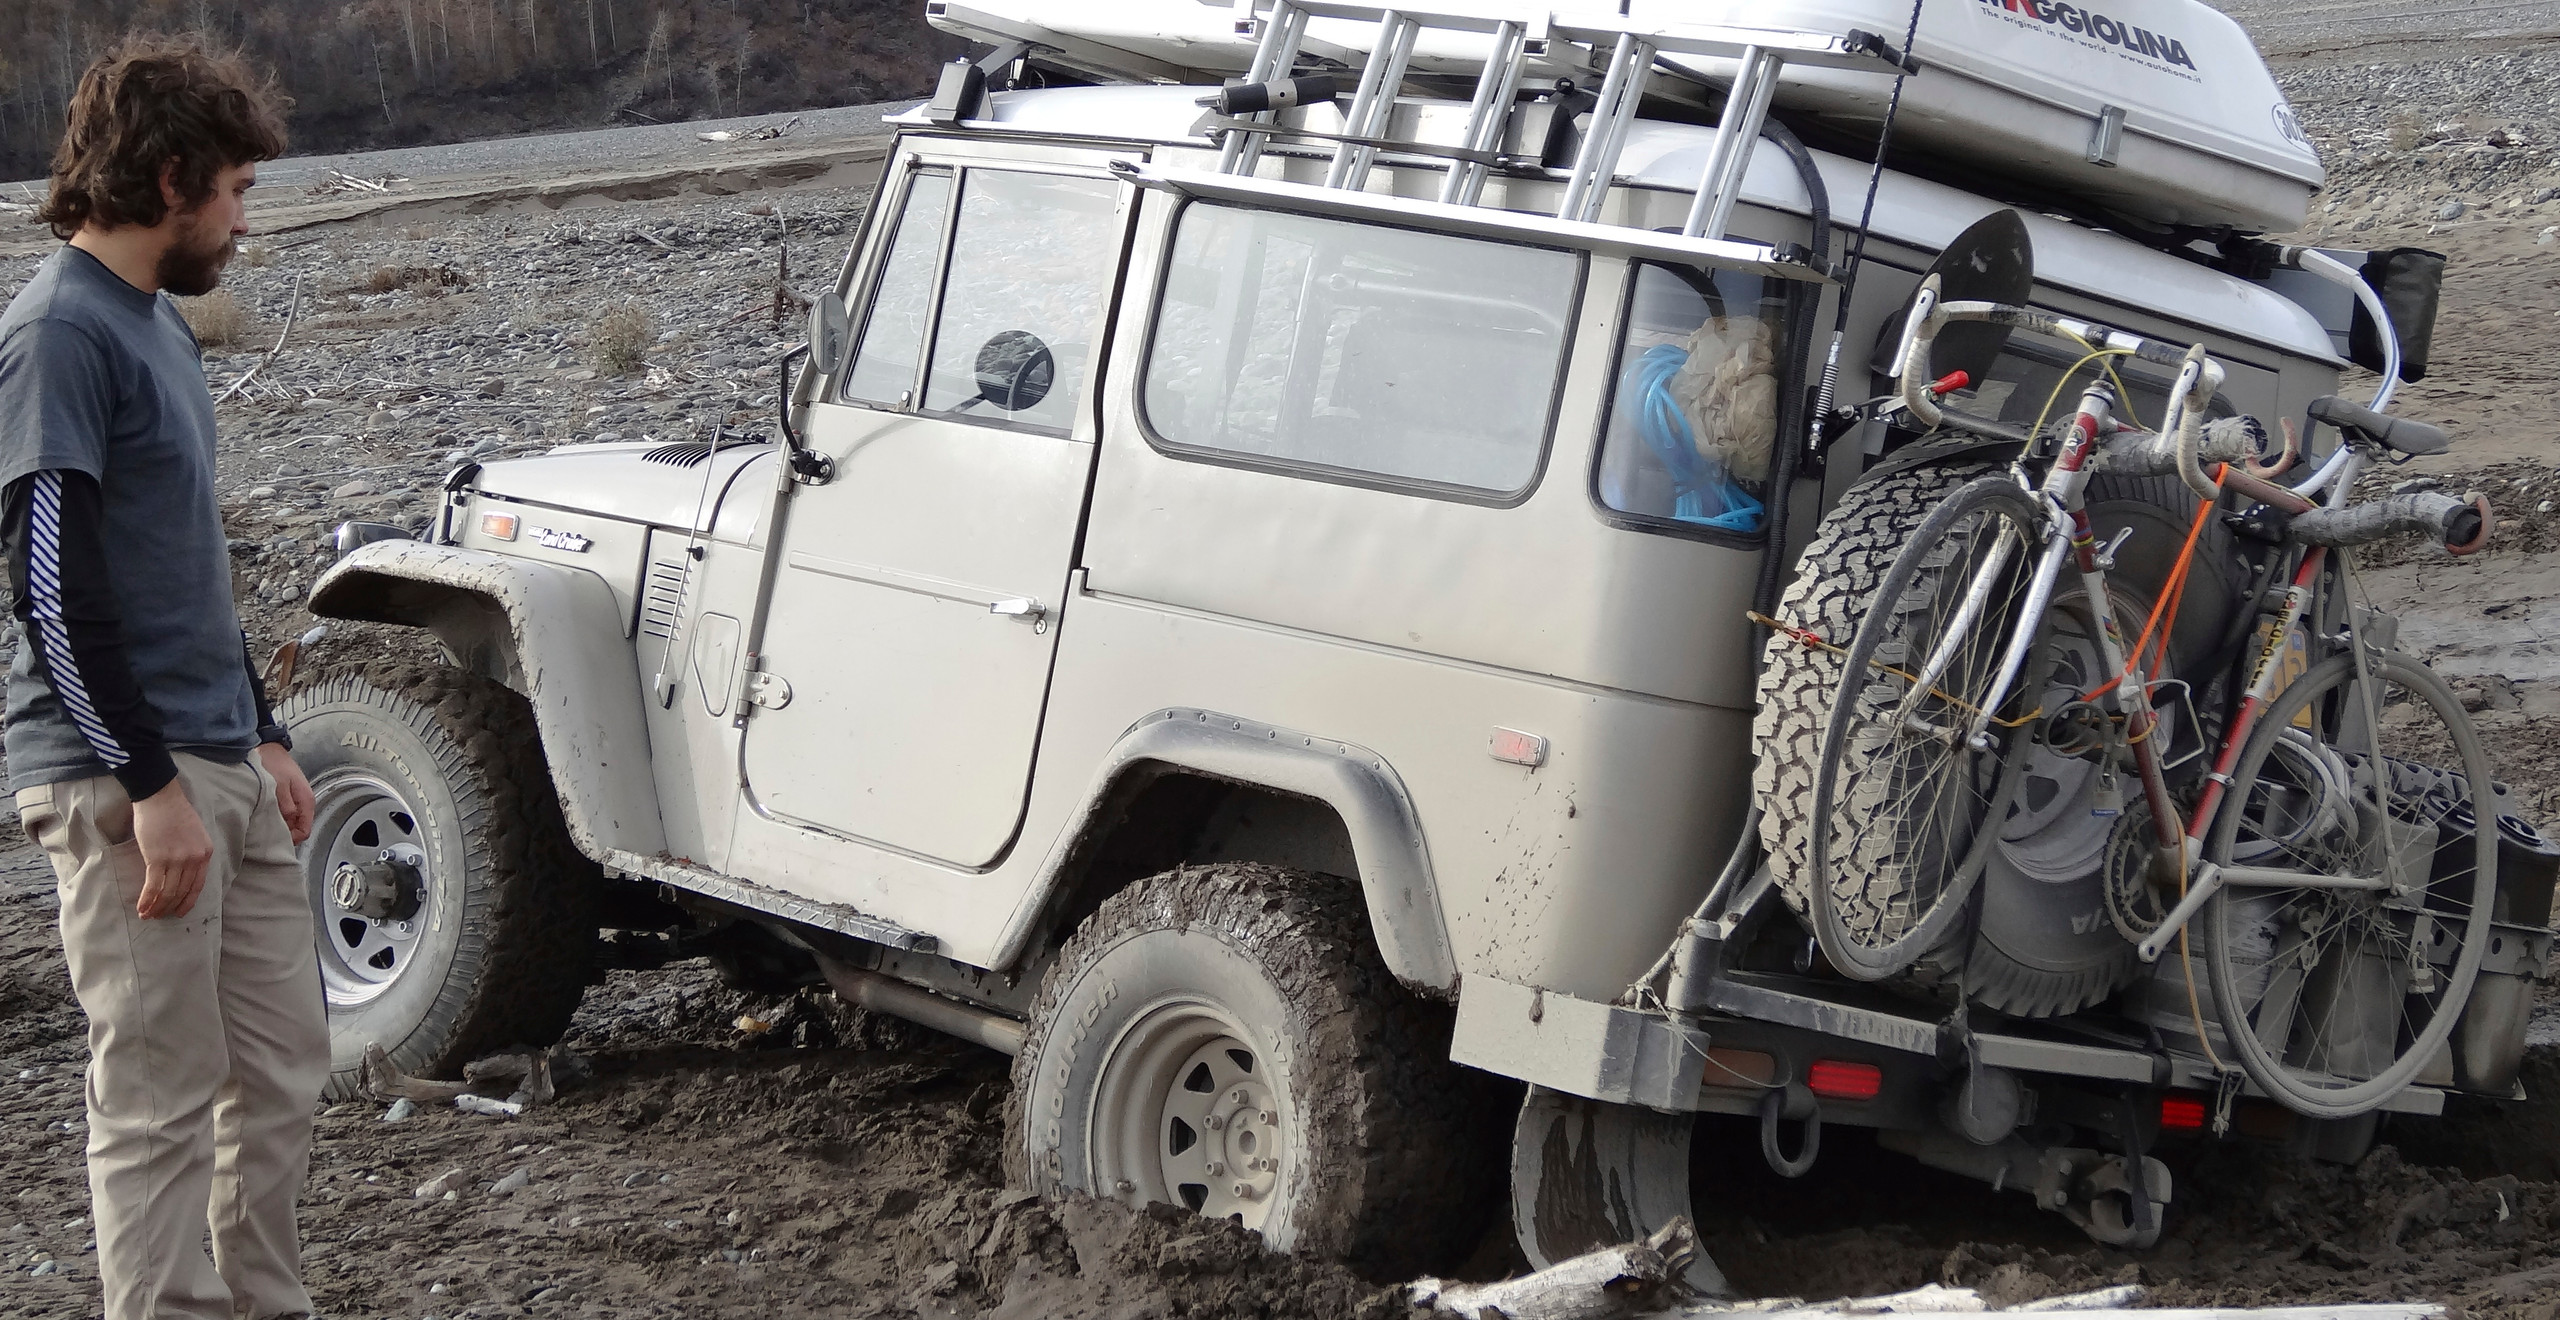 Off roading wasn't always a good idea in the middle of nowhere